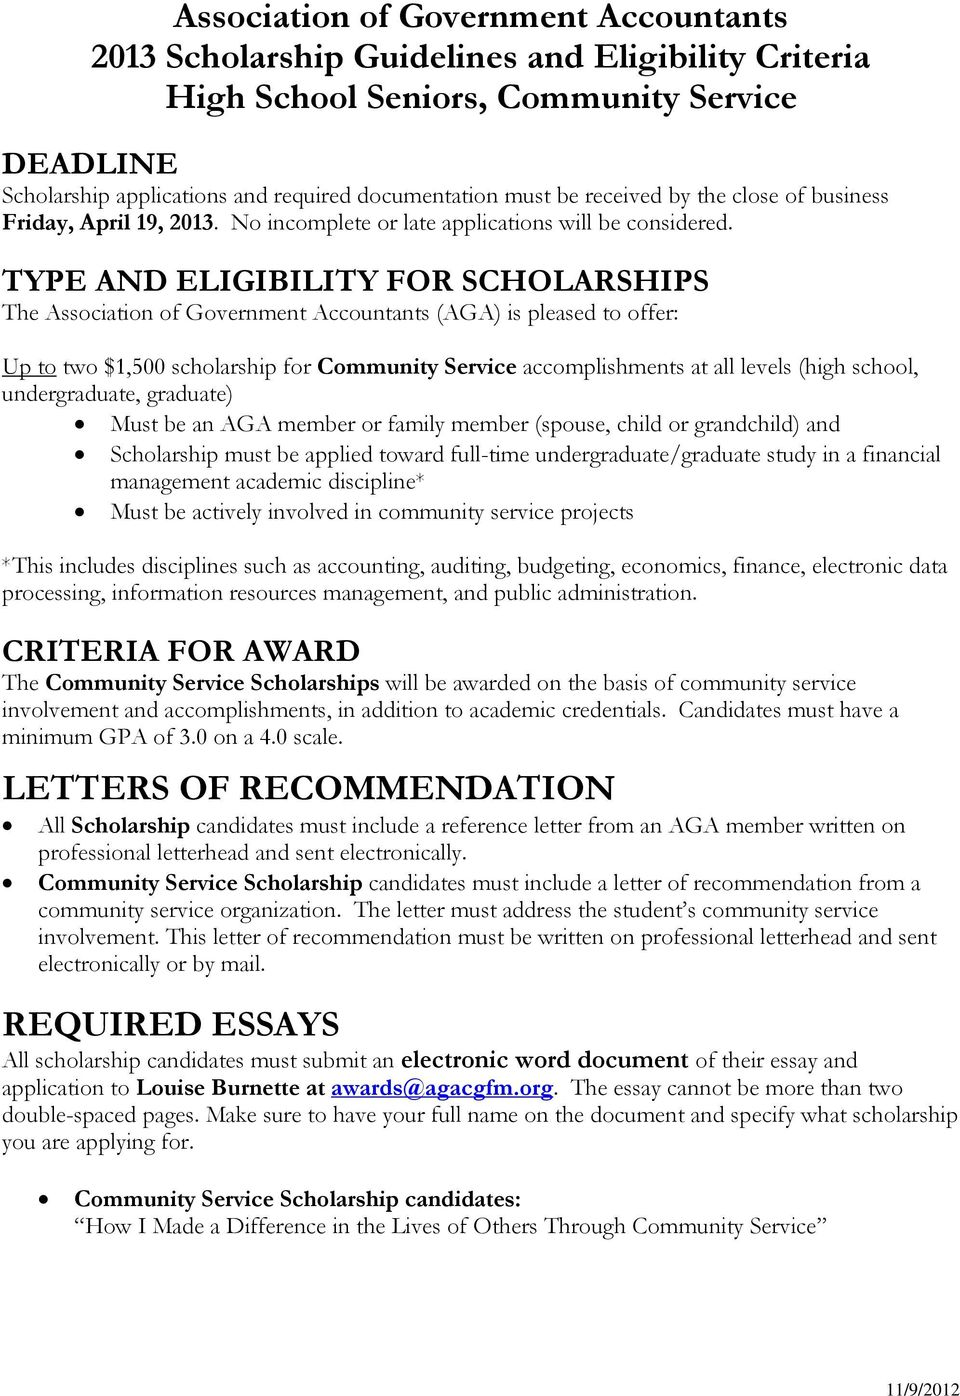 TYPE AND ELIGIBILITY FOR SCHOLARSHIPS The Association of Government Accountants (AGA) is pleased to offer: Up to two $1,500 scholarship for Community Service accomplishments at all levels (high